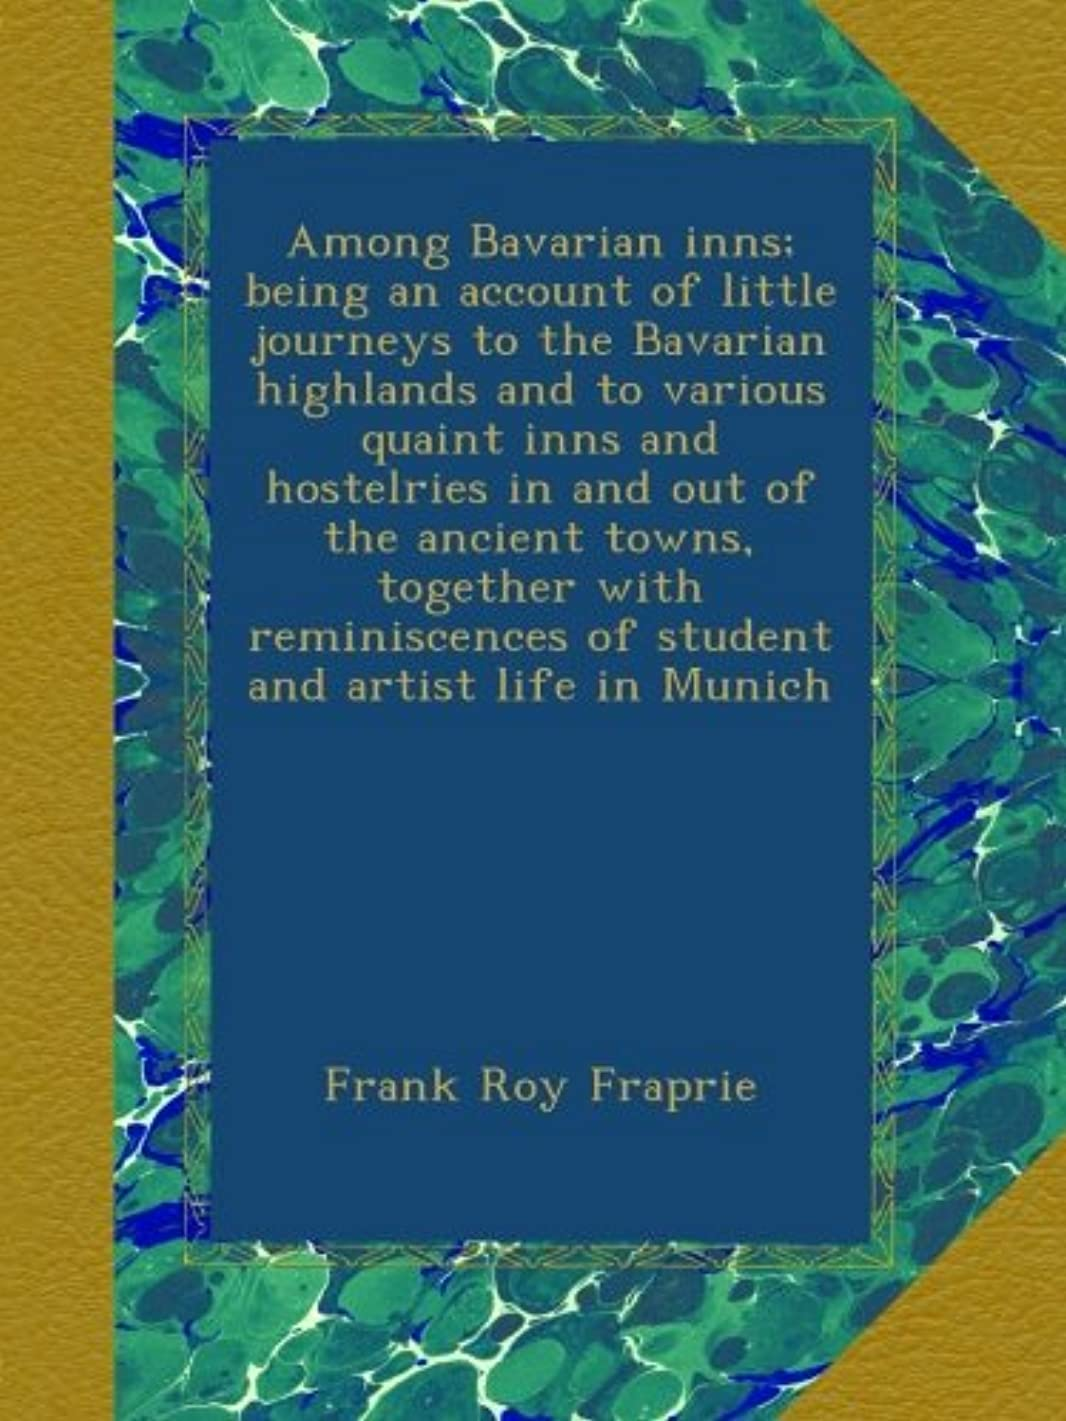 Among Bavarian inns; being an account of little journeys to the Bavarian highlands and to various quaint inns and hostelries in and out of the ancient ... of student and artist life in Munich